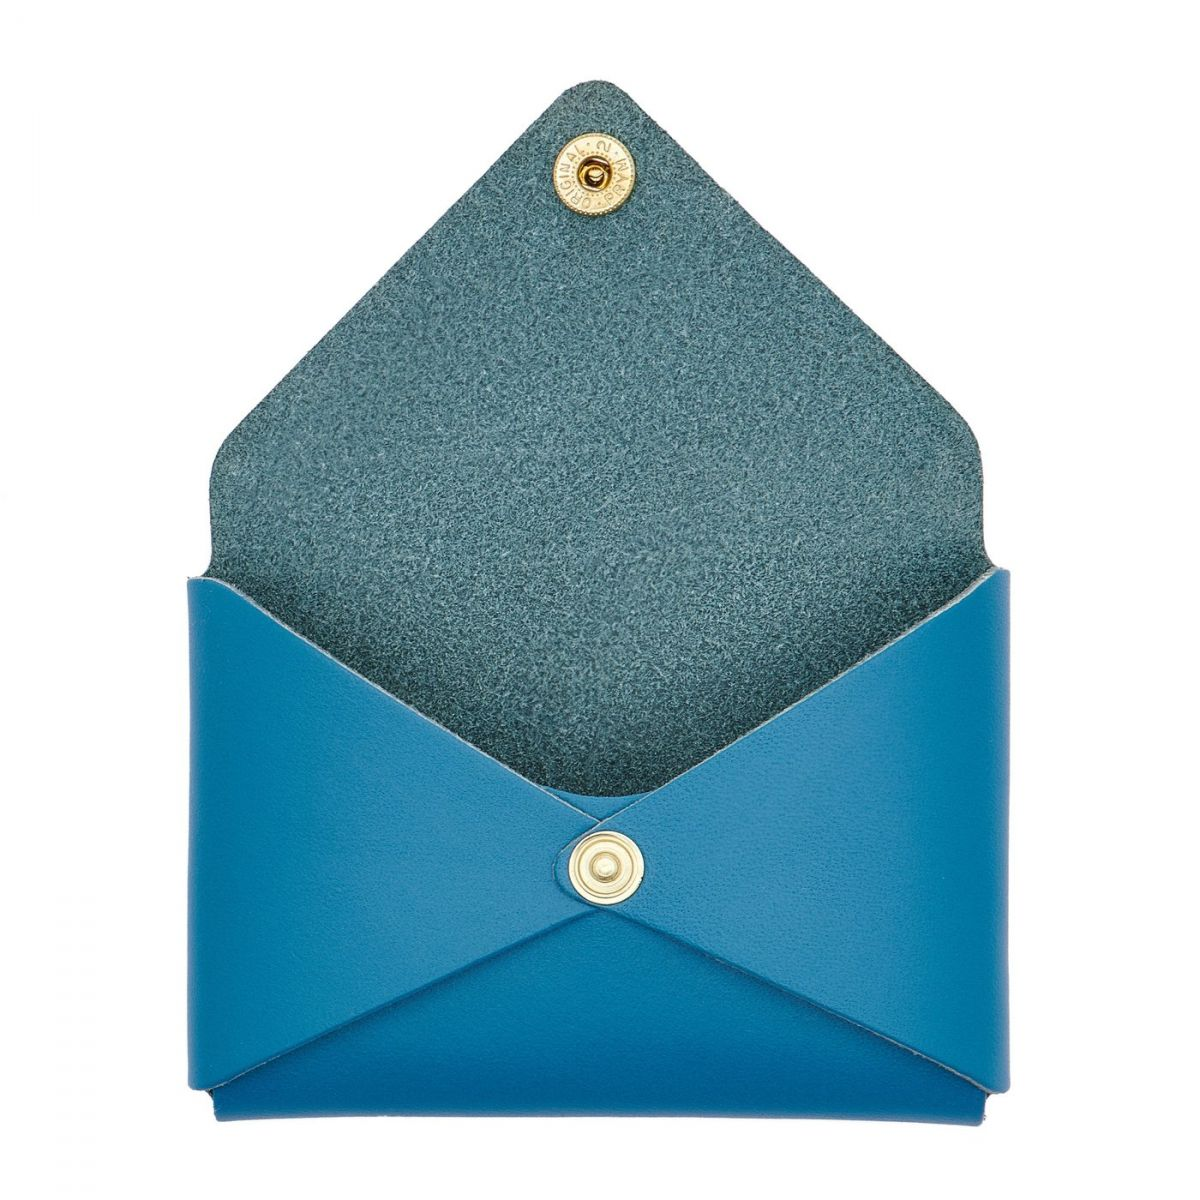 Sovana - Women's Card Case in Cowhide Double Leather color Blue Teal - SCC031 | Details